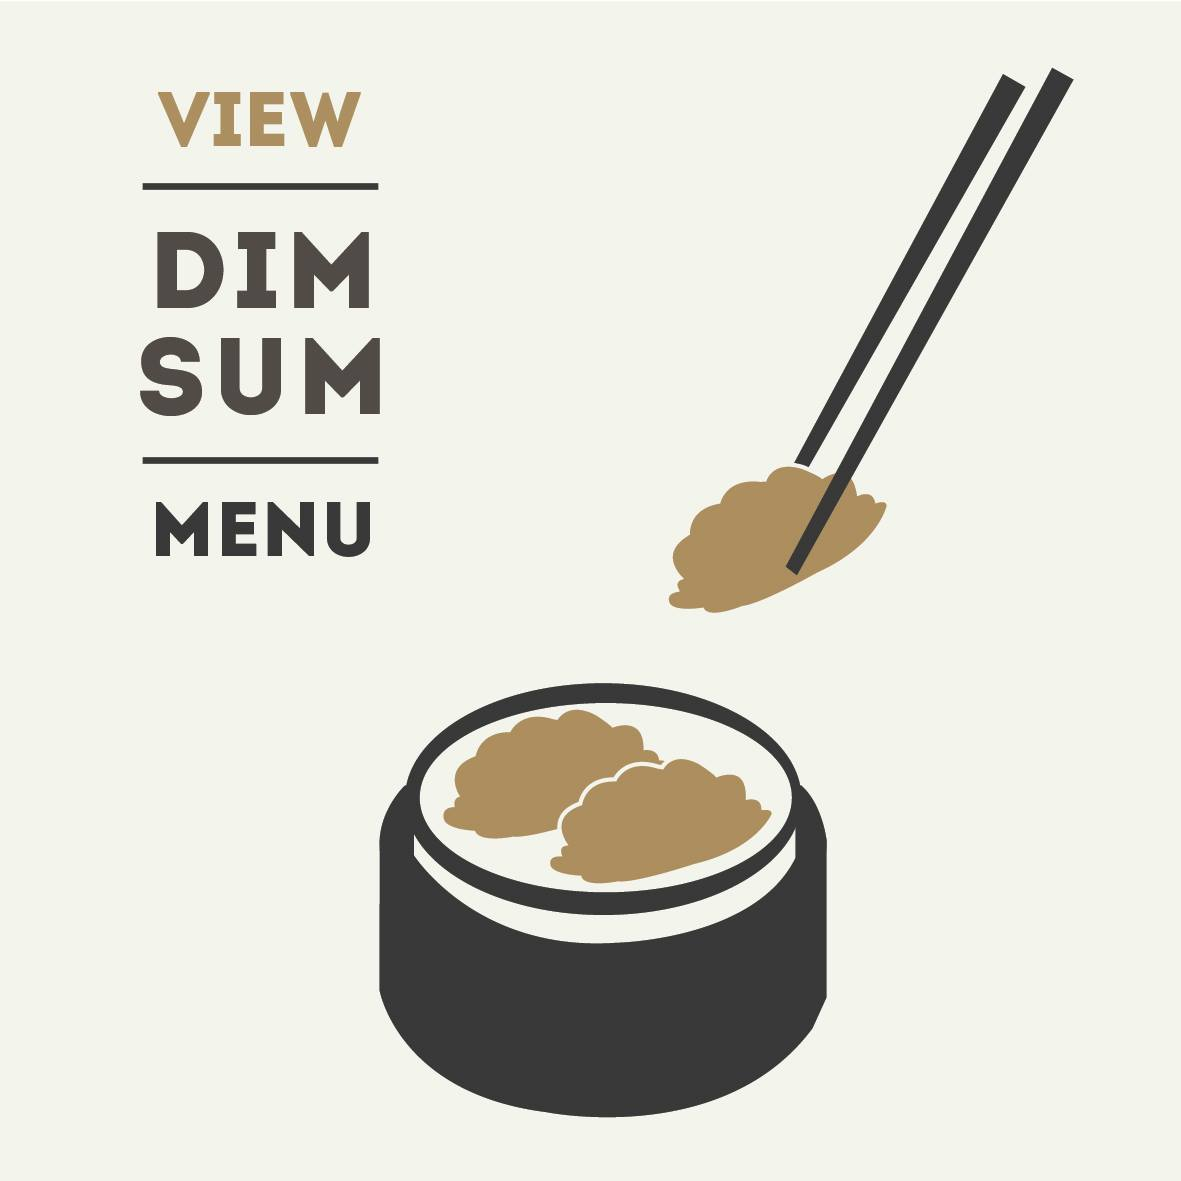 View the dim sum menu